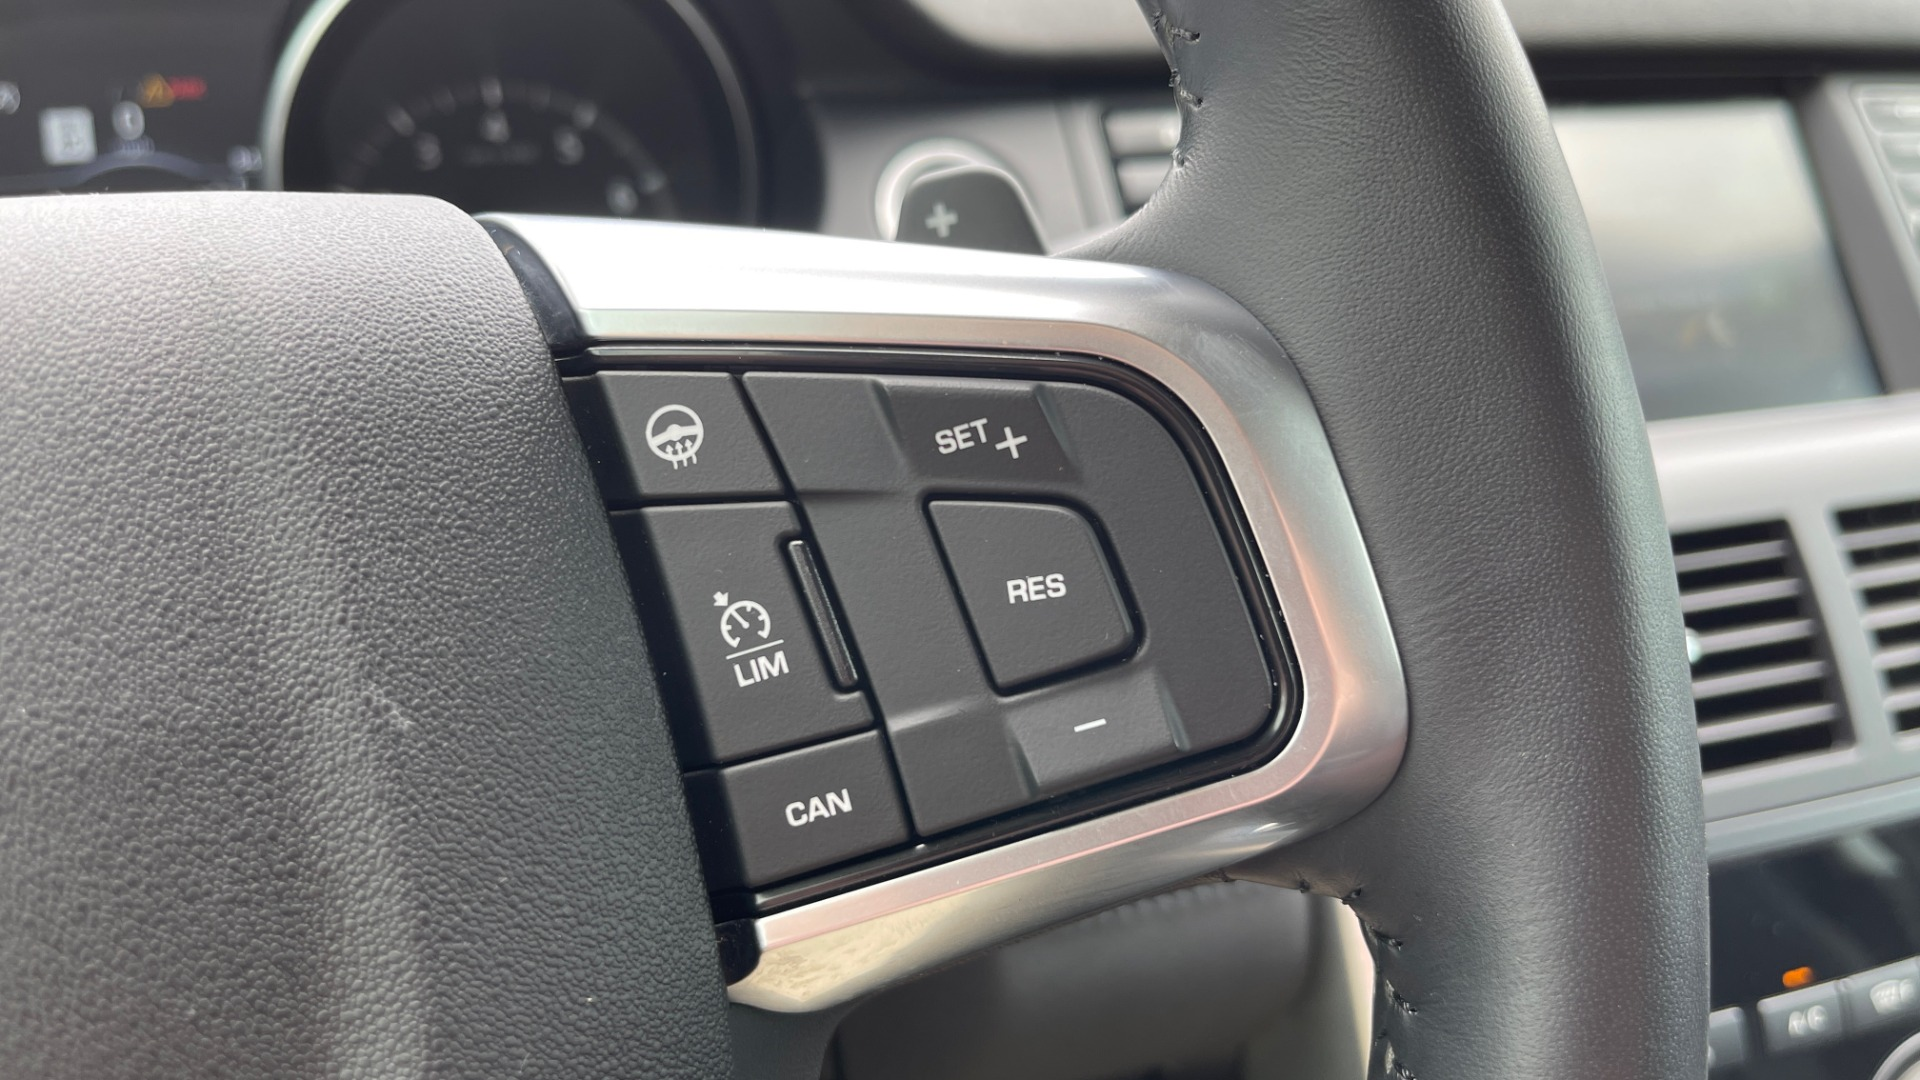 Used 2018 Land Rover DISCOVERY SPORT HSE 4WD / NAV / PANO-ROOF / MERIDIAN SND / HTD STS / LANE ASST / REARVIEW for sale $34,995 at Formula Imports in Charlotte NC 28227 40